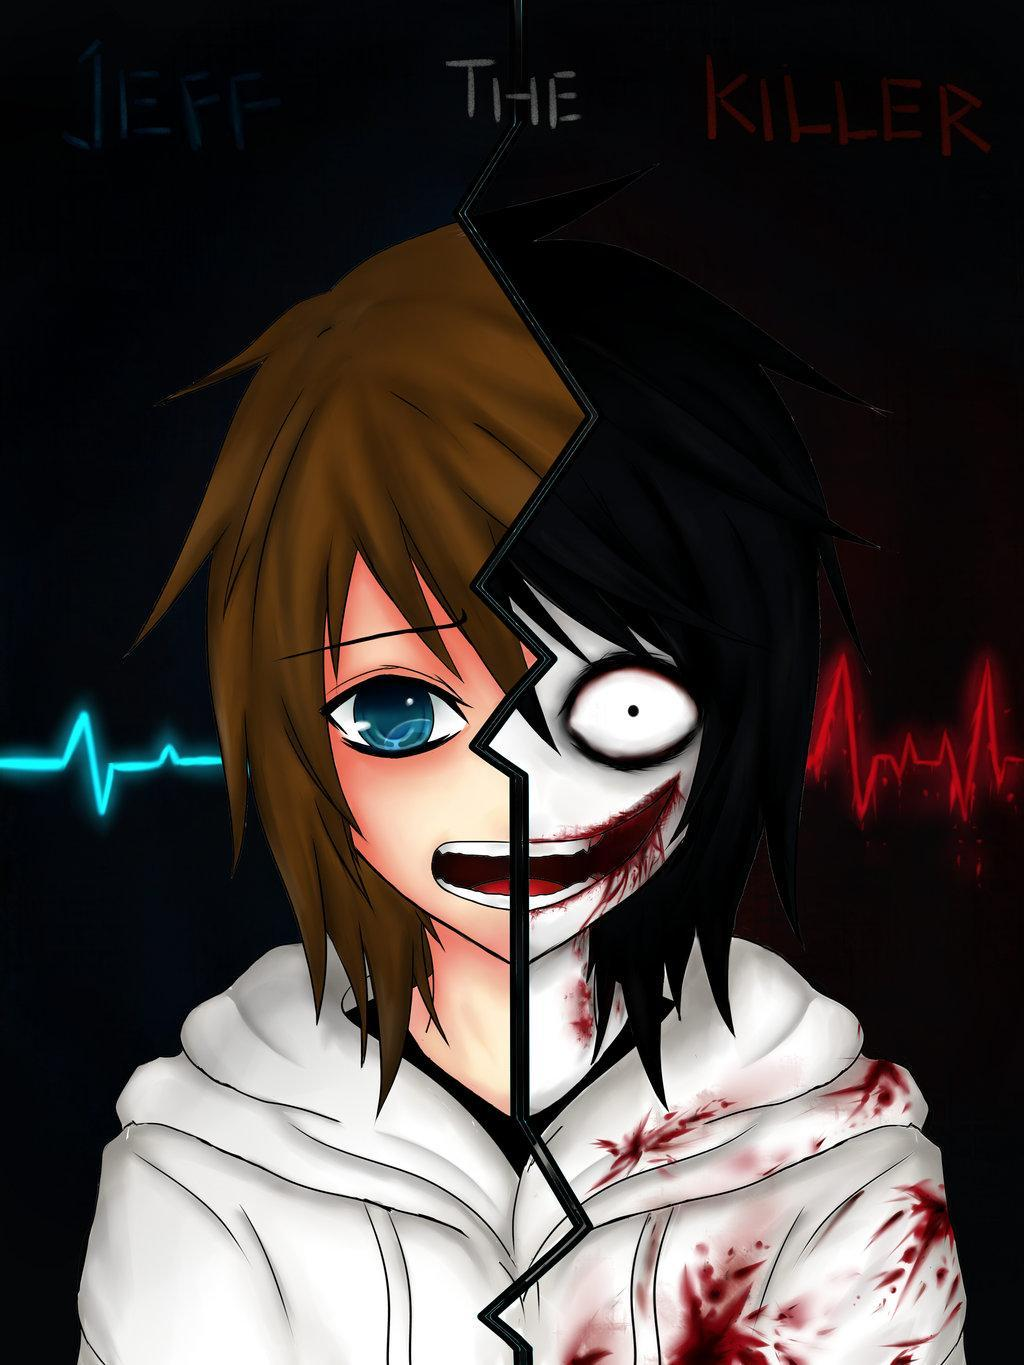 How Much Do You Know About Jeff the Killer?